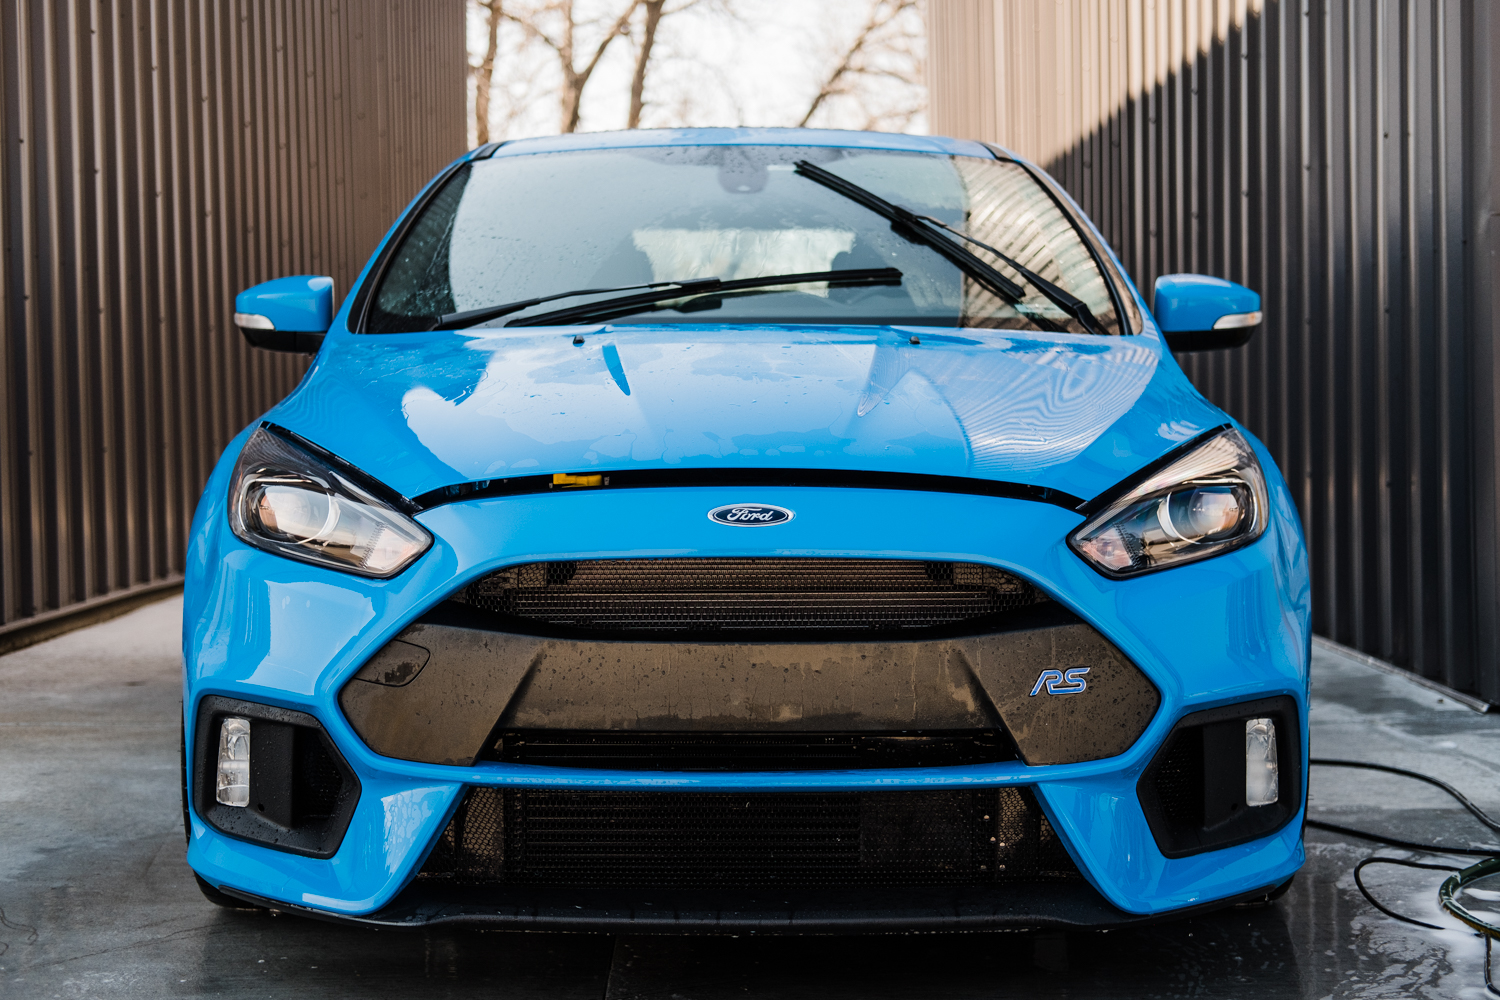 Ford Focus RS-XPEL Ultimate Paint Protection Film-Car Wash-Car Detailing-Paint Protection Film-Clear Bra-Ford Performance-100.jpg